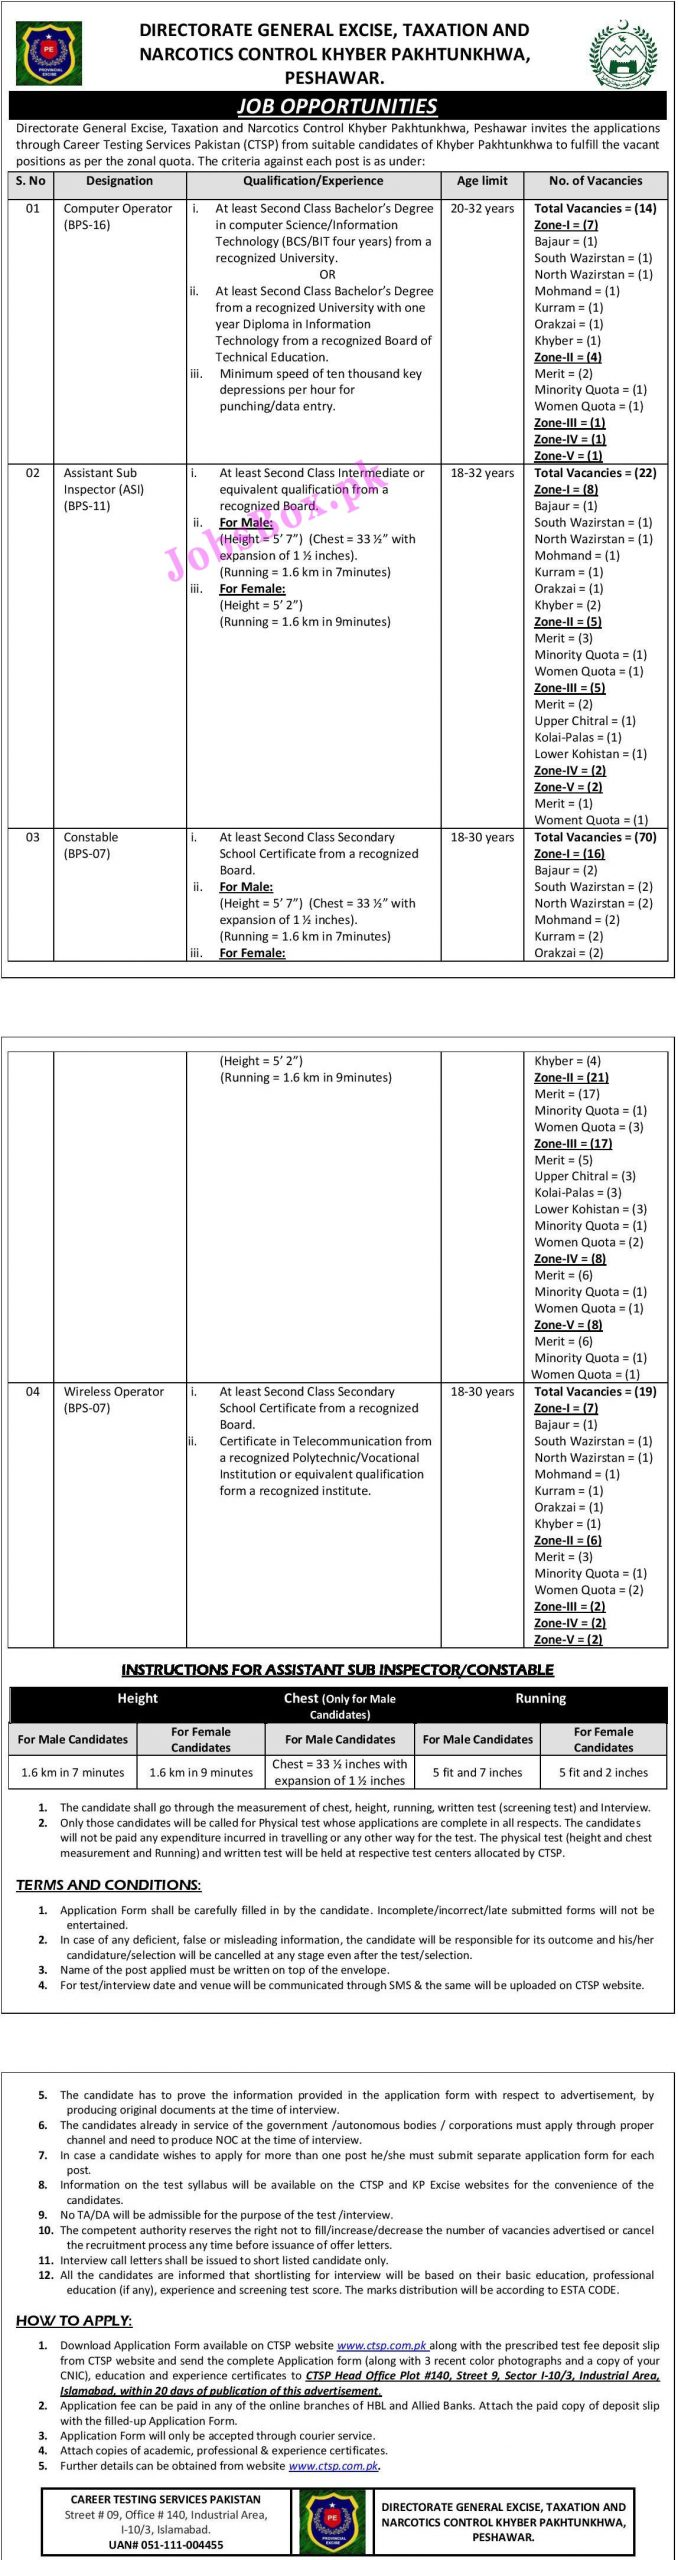 Excise Taxation & Narcotics Control Department Jobs 2021